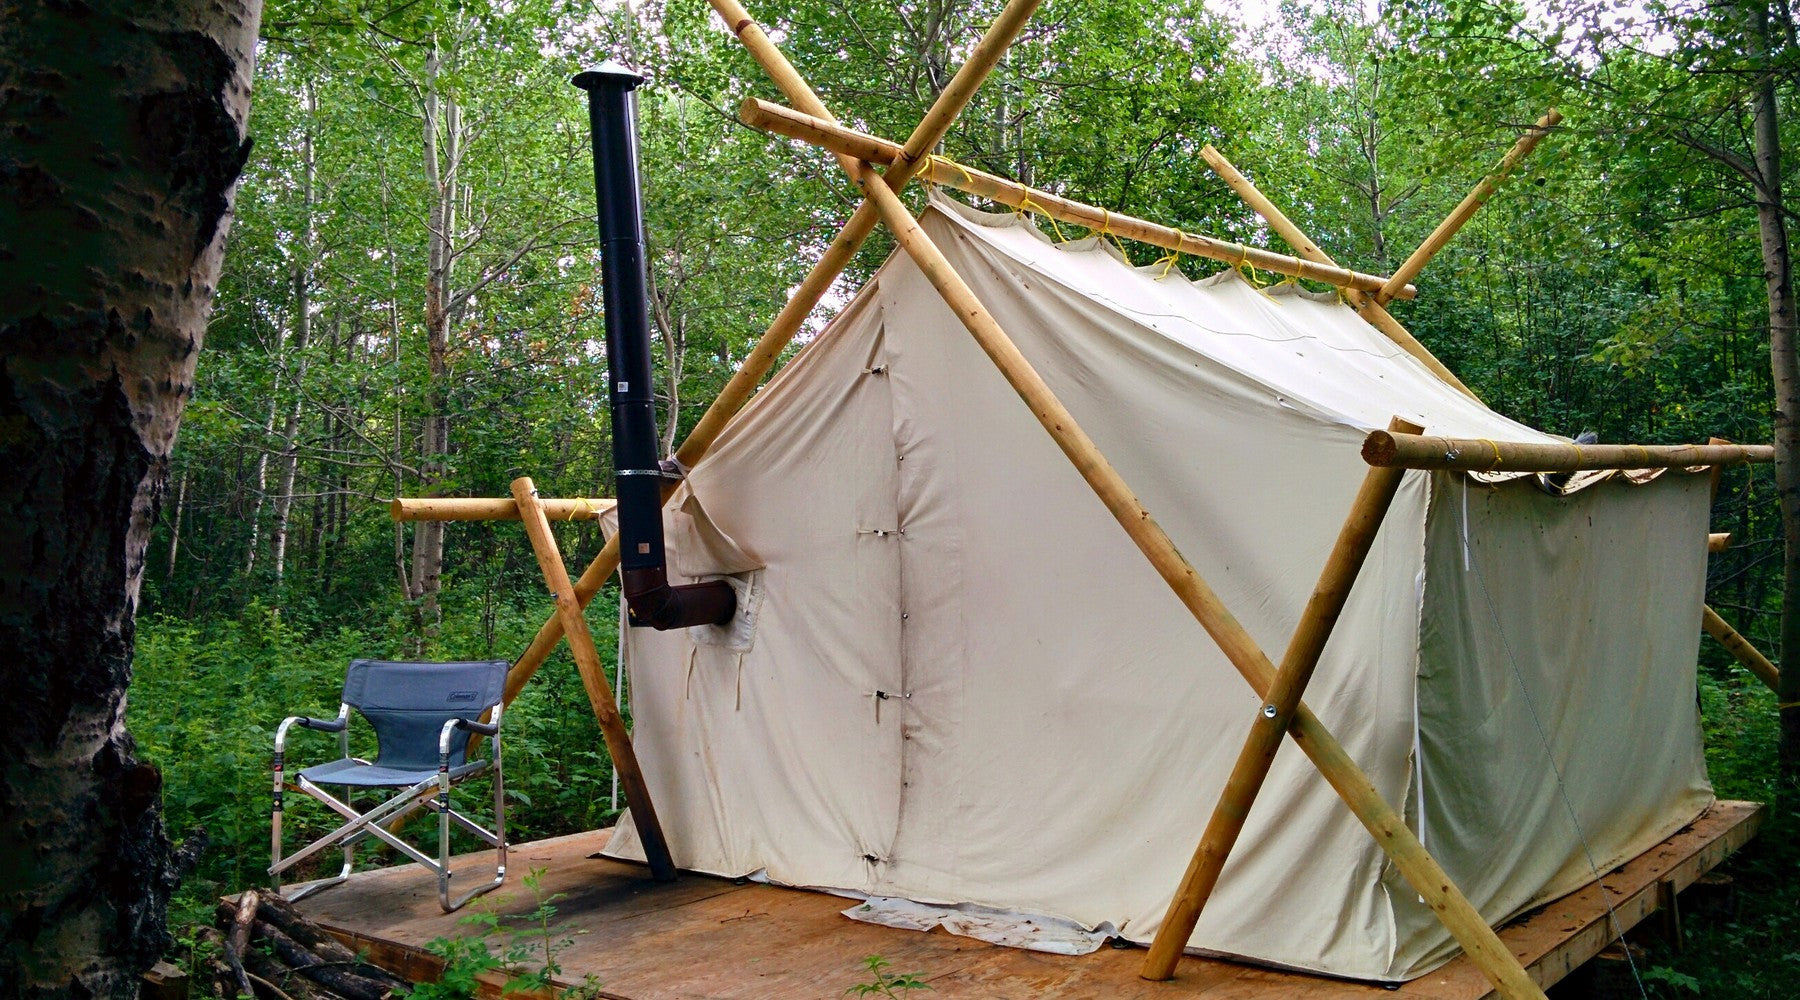 Woods industrial prospector wall tent rewild outfitters for Wood tents